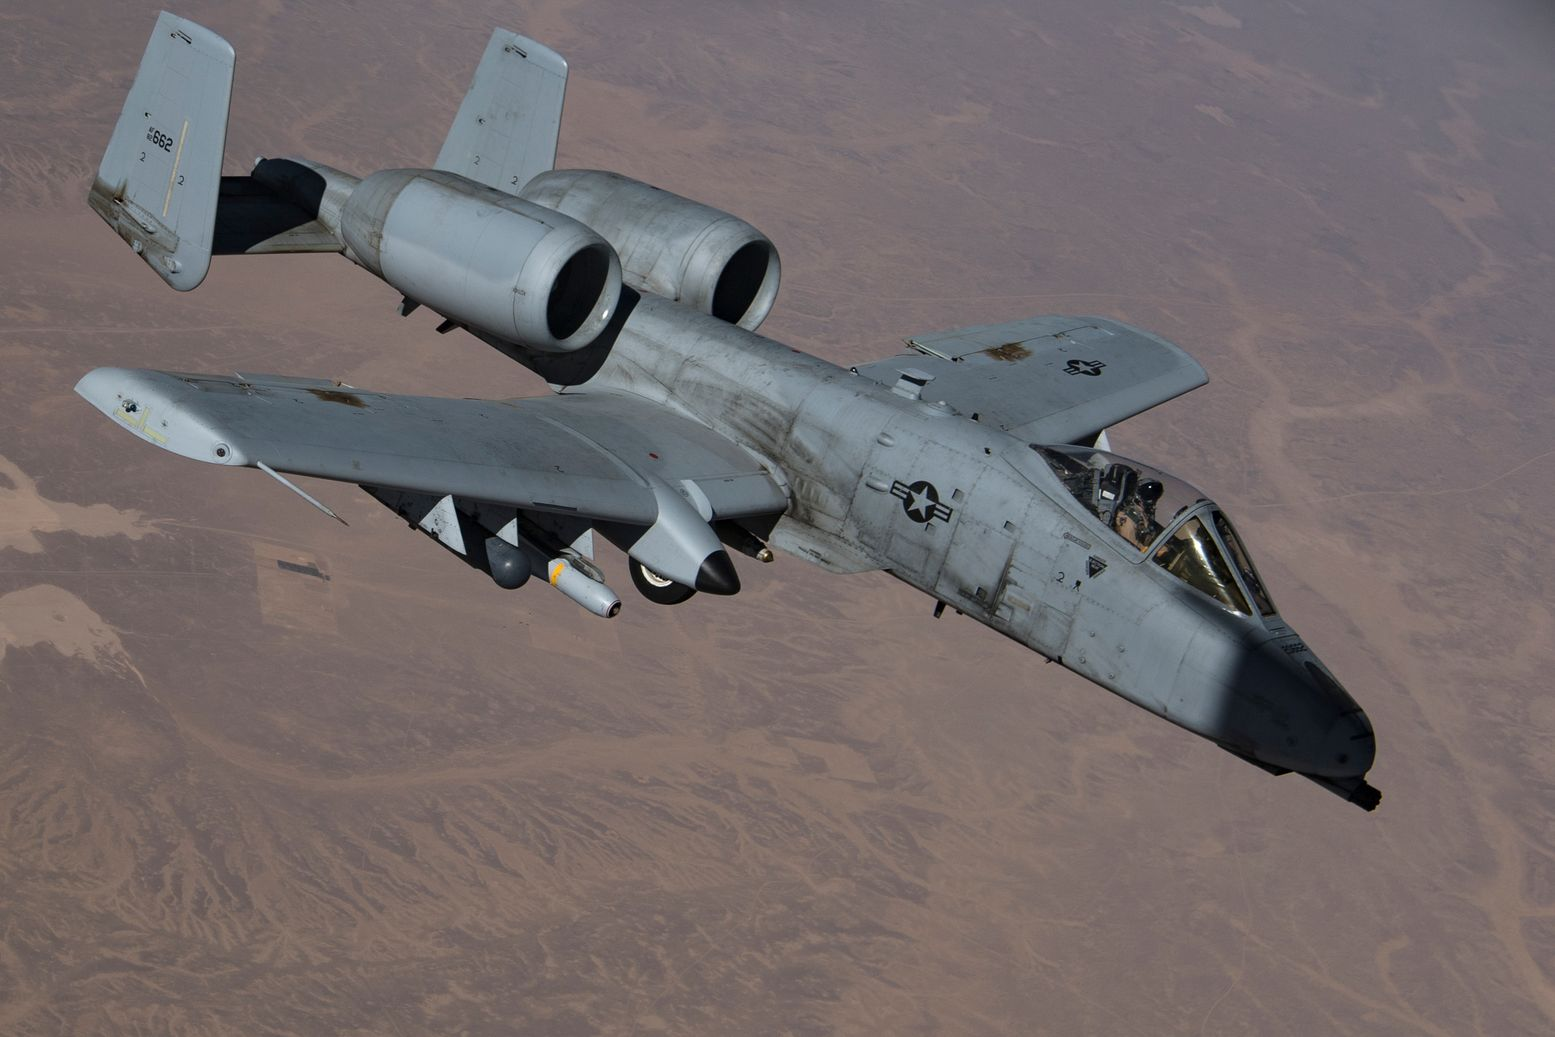 8 Year Project Complete: Every A-10 Warthog Now Has New Wings